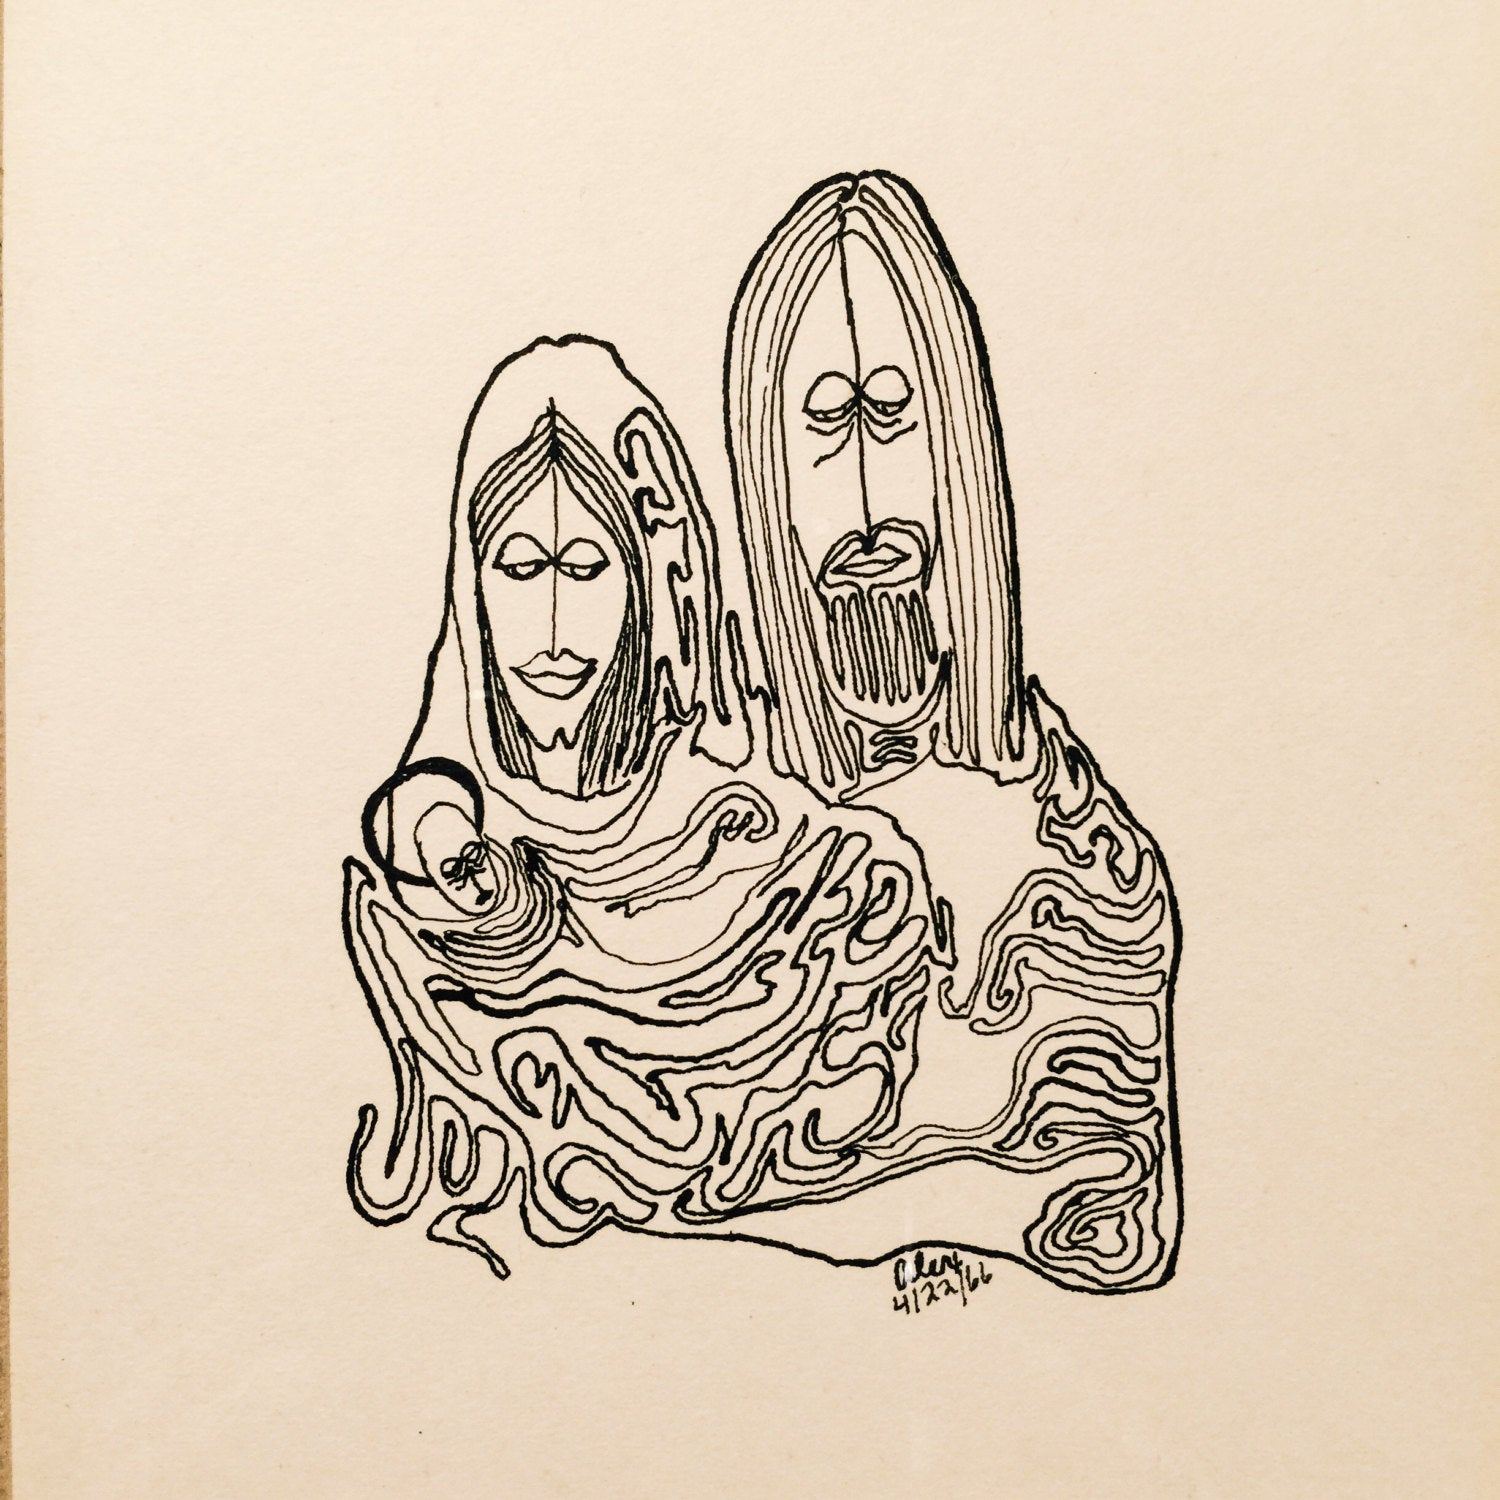 Psychedelic Ink Drawing of Jesus, Mary and Joseph - Framed - Signed - 1966 - Vintage